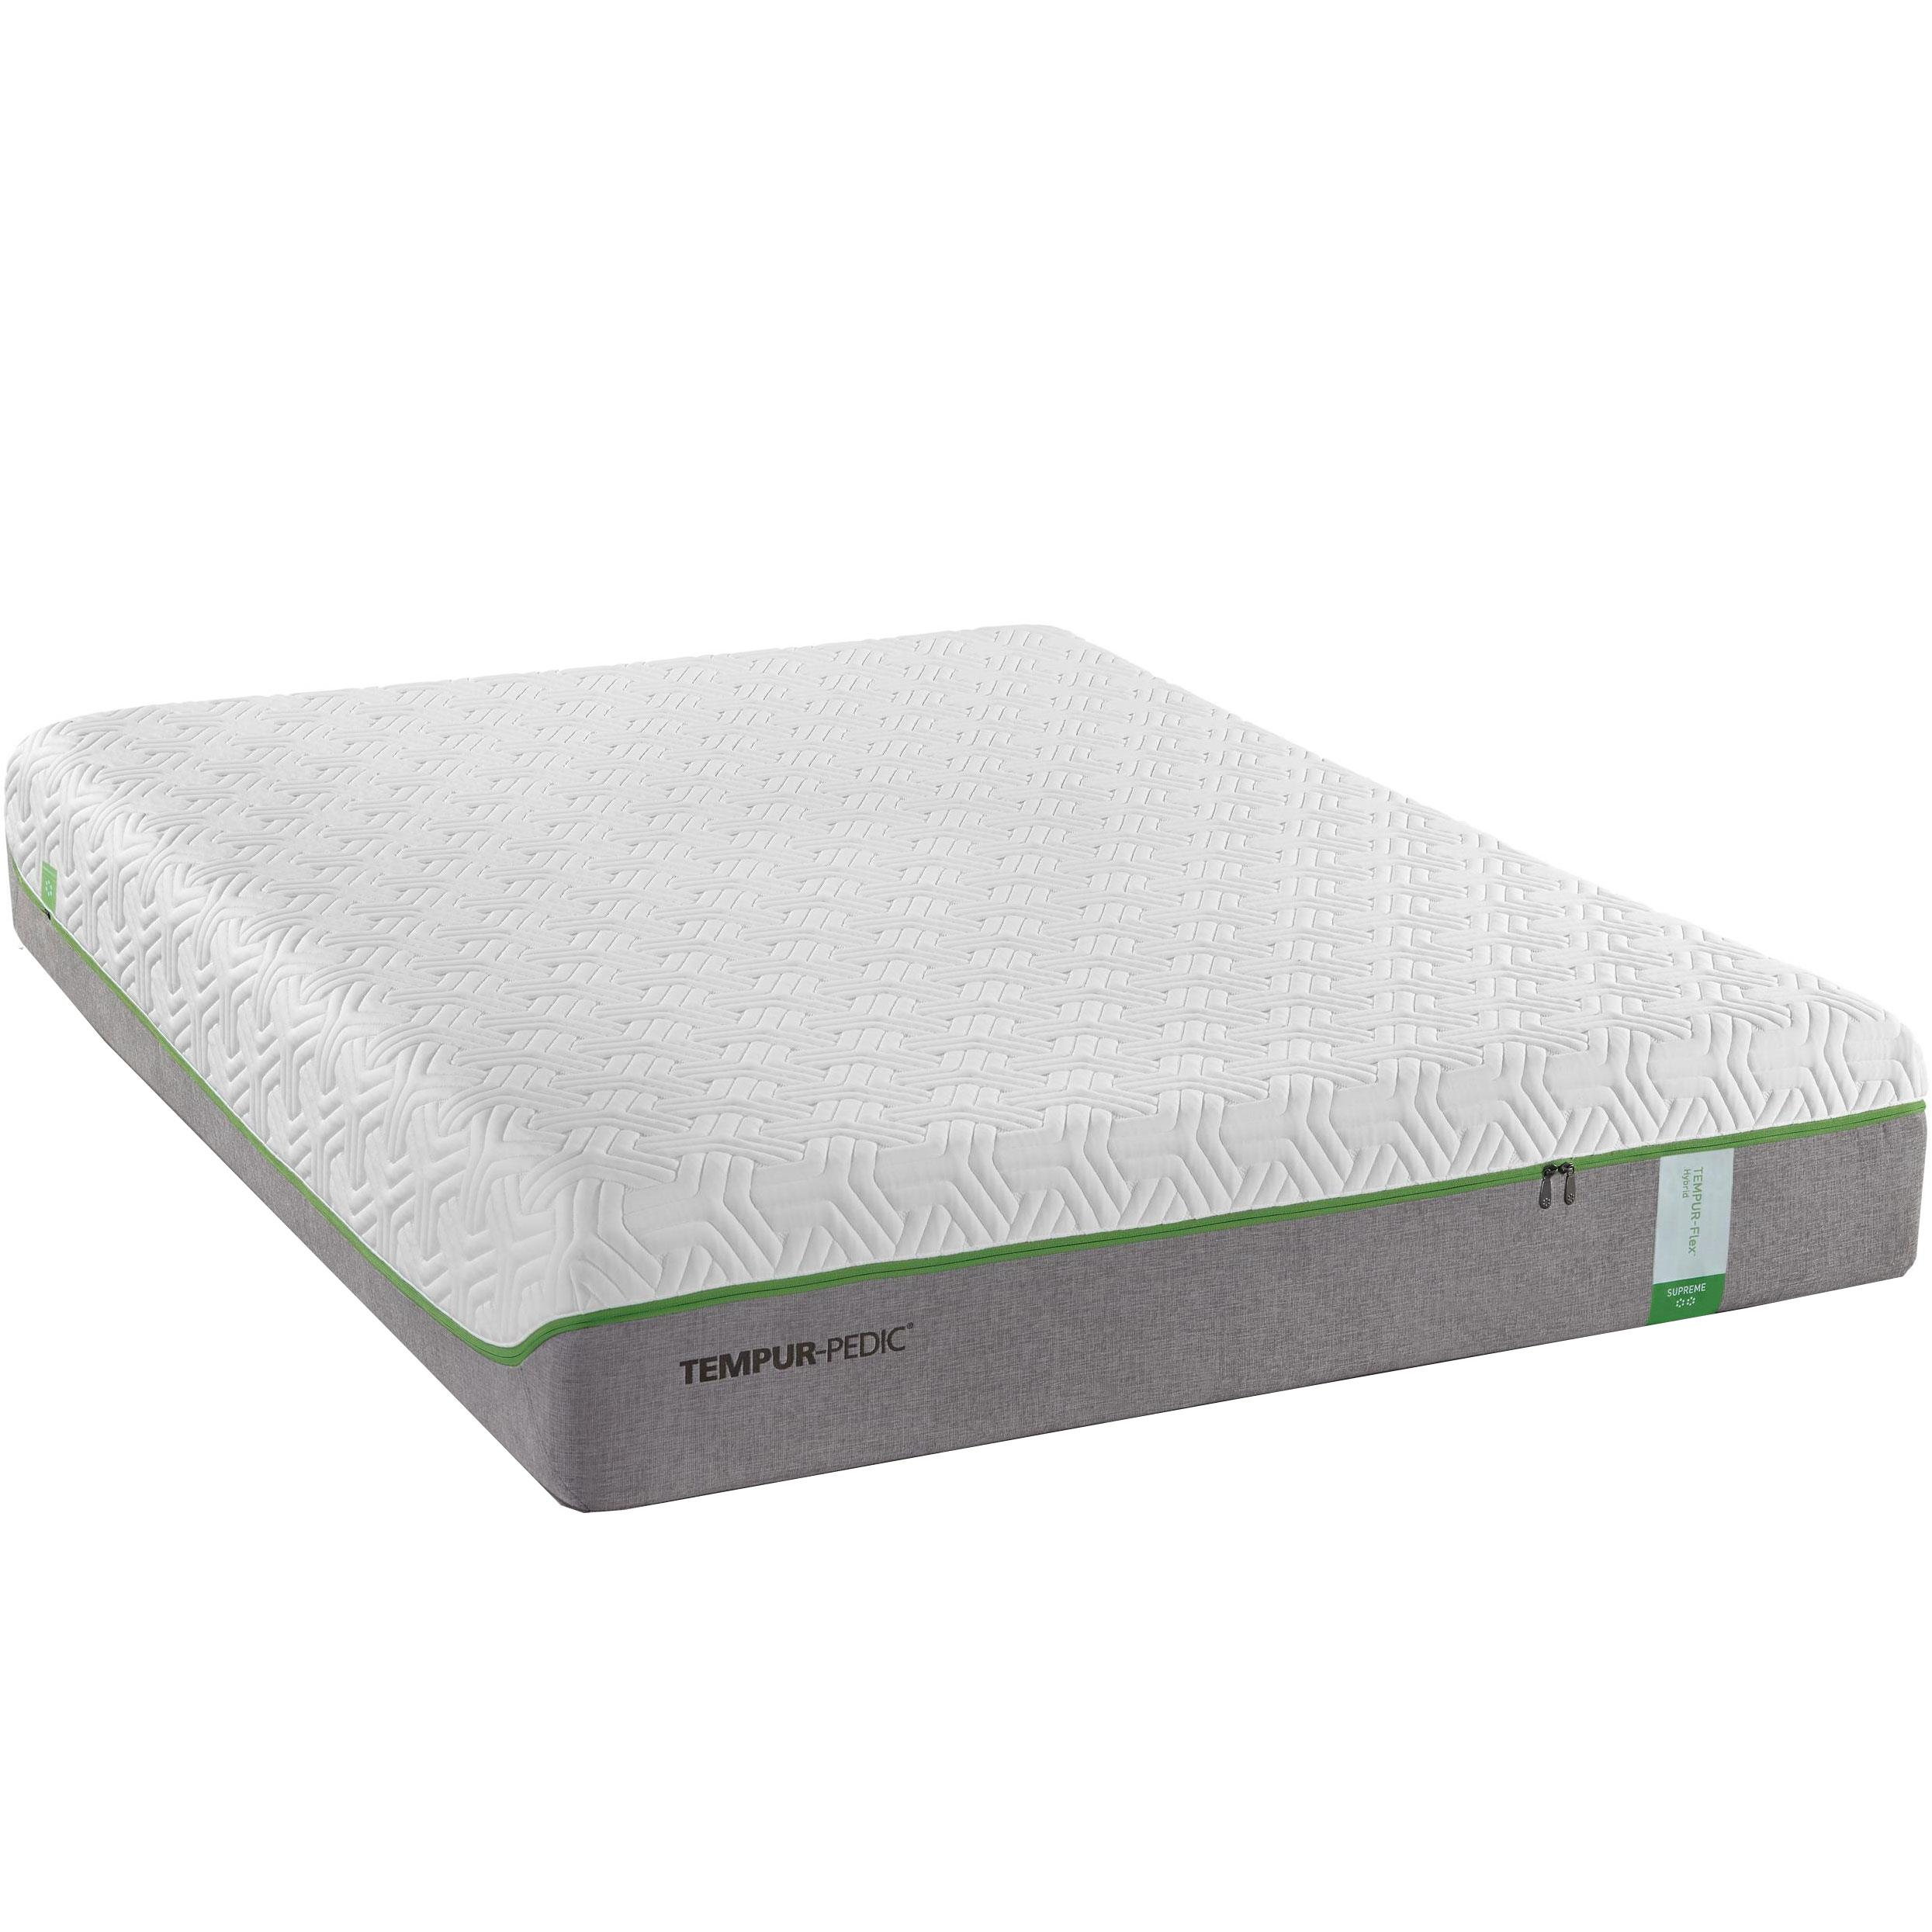 Tempur-Pedic® TEMPUR-Flex Supreme King Medium Plush Mattress - Item Number: 10116170